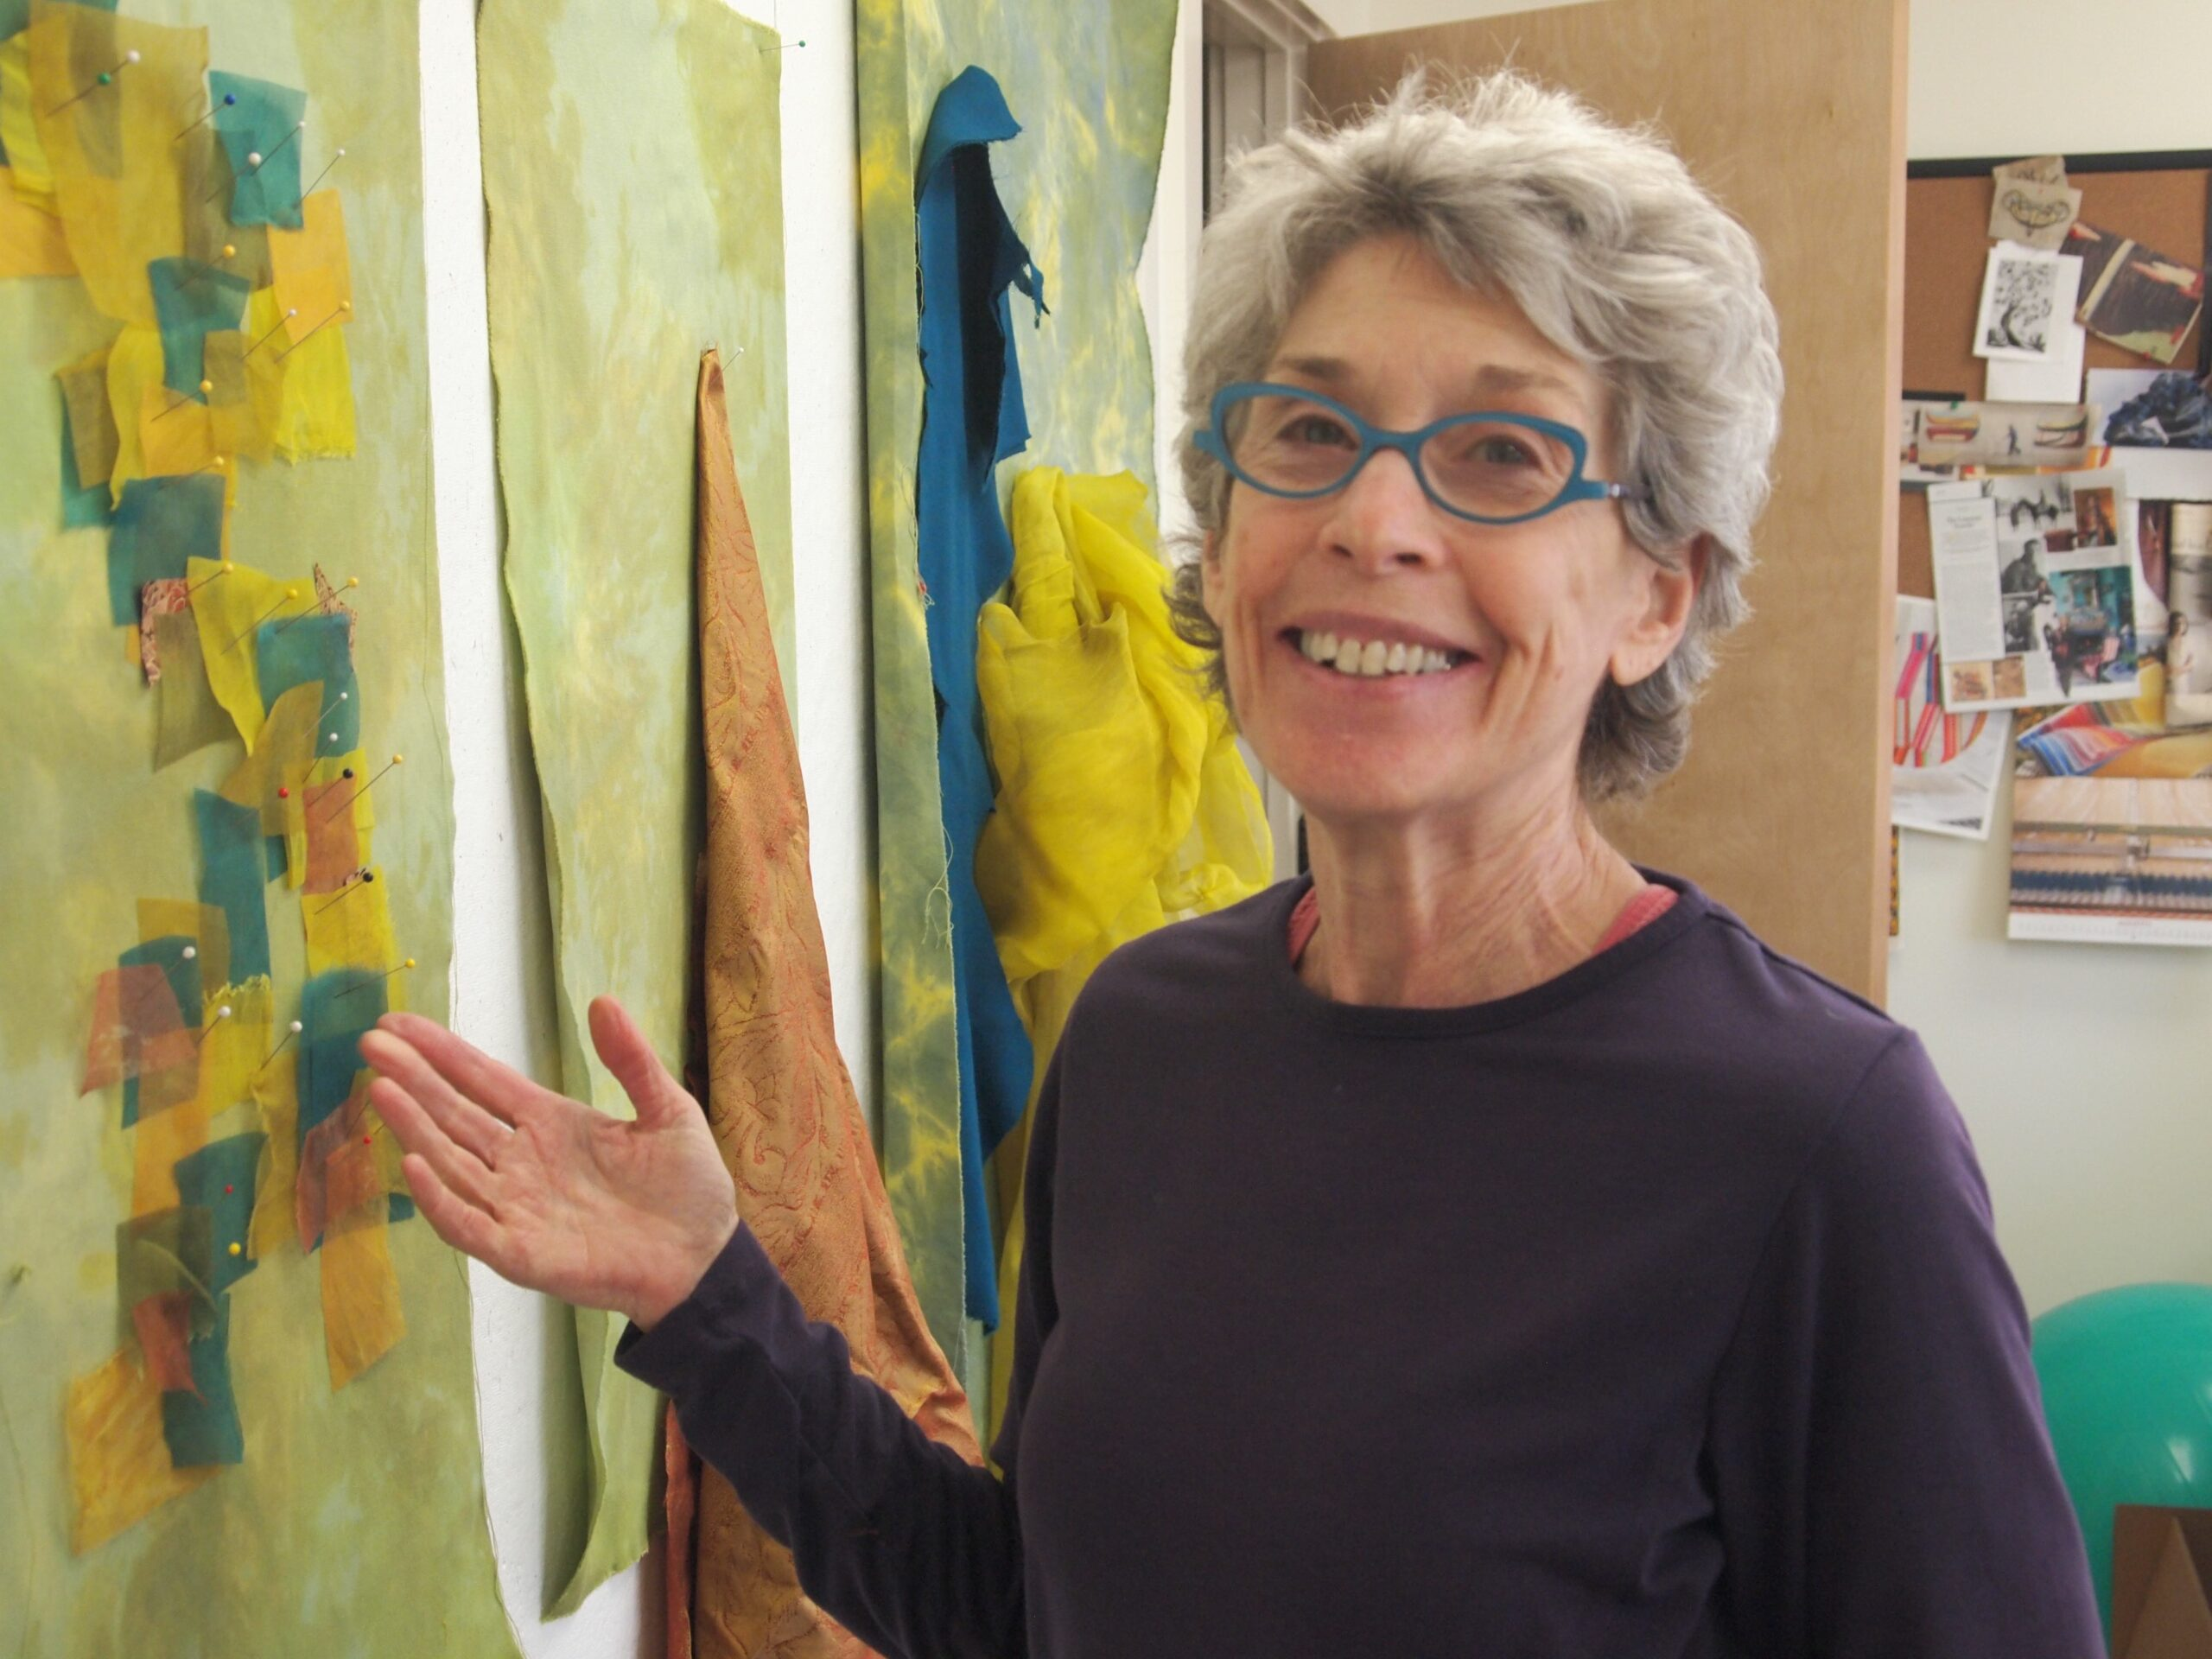 A woman gestures towards a piece of fiber art hanging on the wall beside her while smiling at the camera